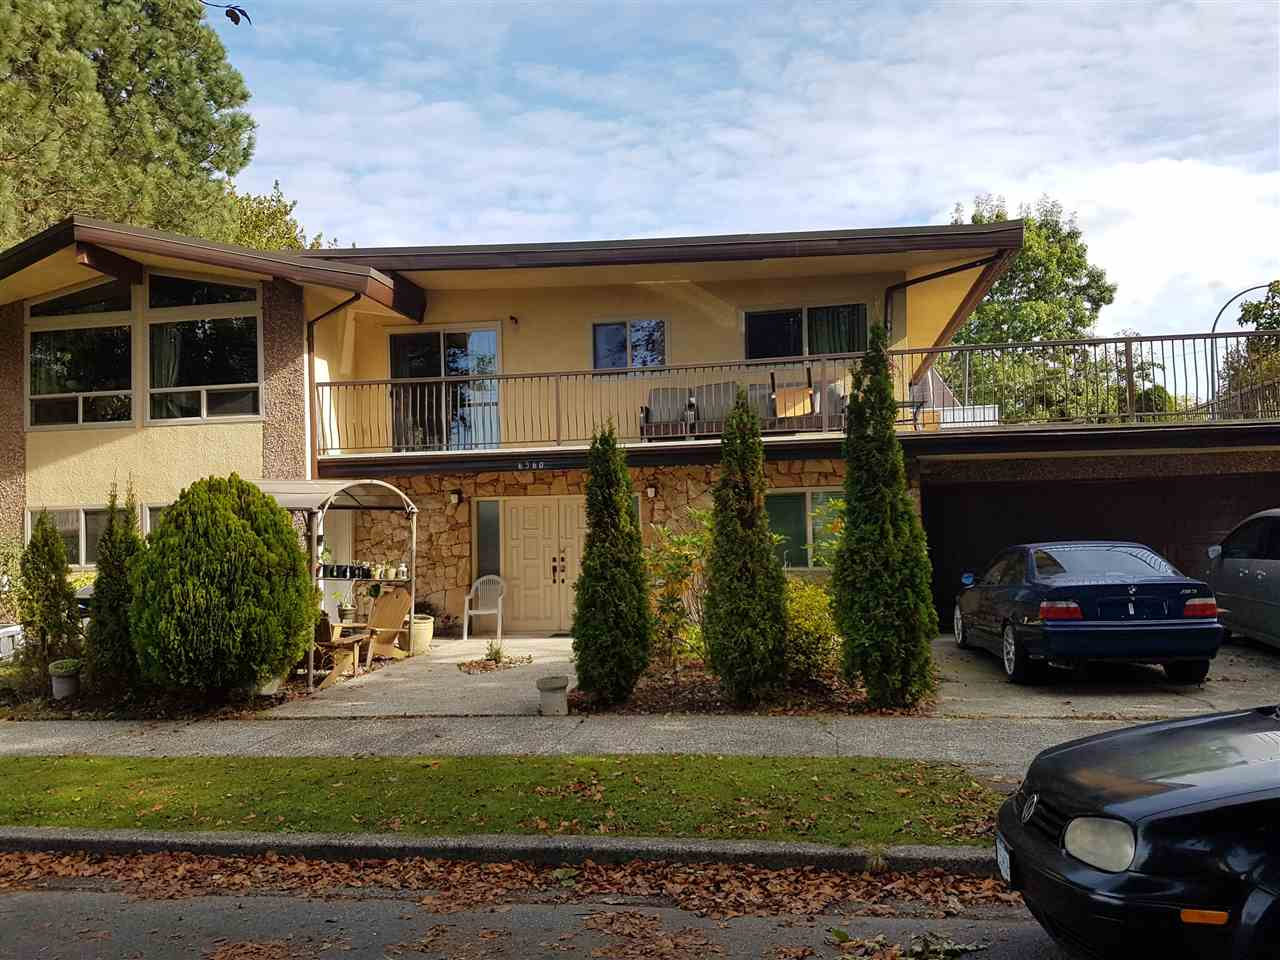 6360 ROSS STREET - South Vancouver House/Single Family for sale, 5 Bedrooms (R2509444)